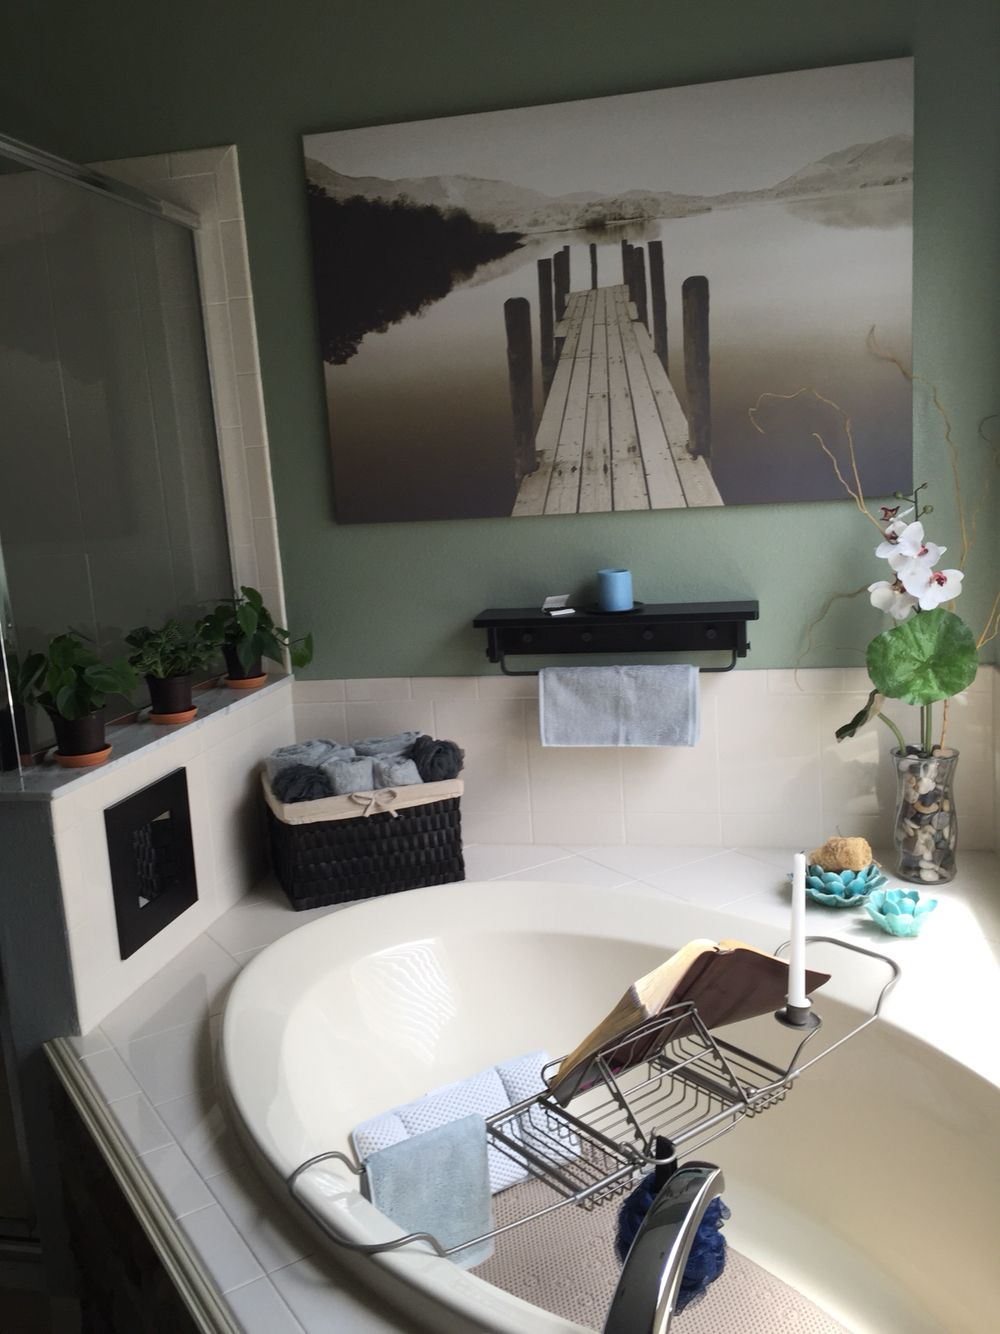 Pic is from Ikea ~$40, awesome over the tub caddy is BB&B ...